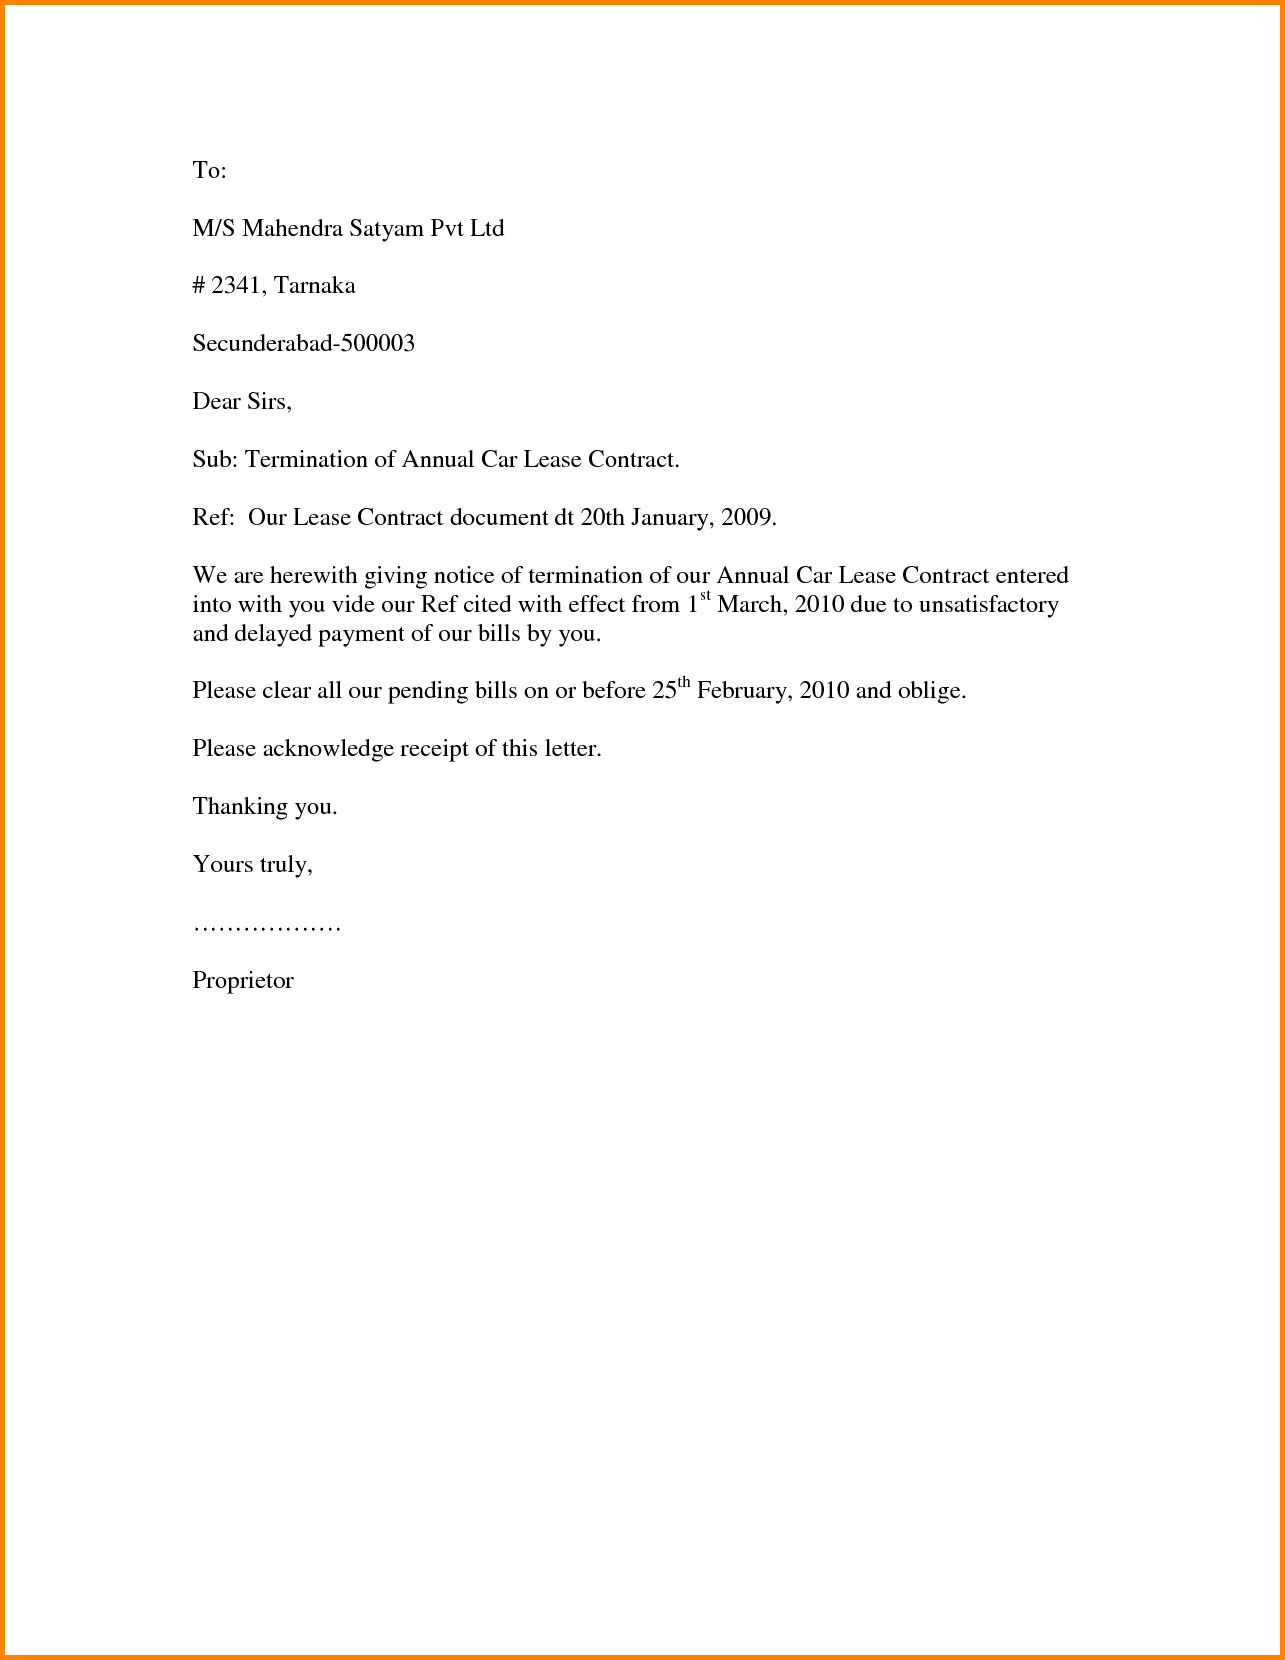 Termination Letter Template Free - How to End Letters How to End A Resignation Letter Fancy Resume How